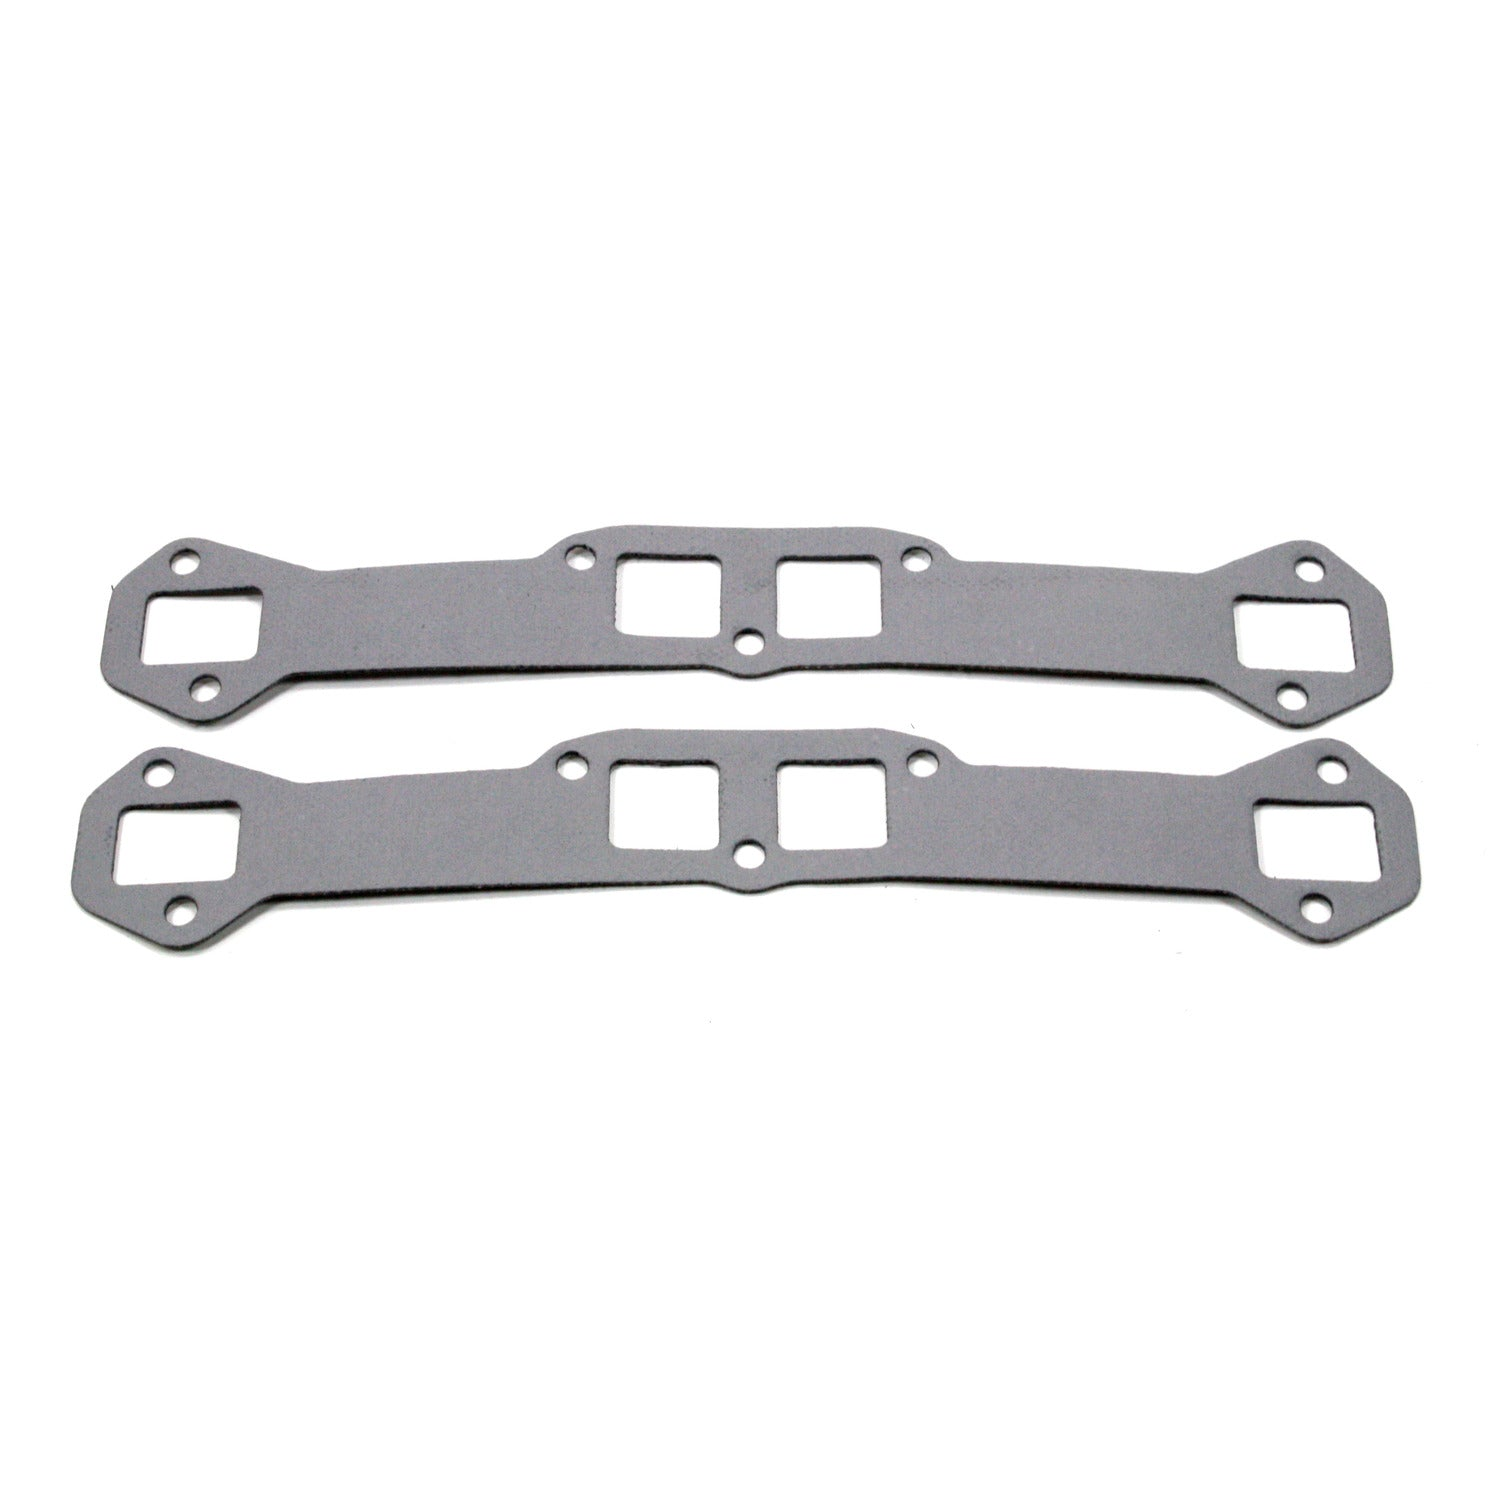 Patriot Exhaust H7582 Header Gasket Chevrolet 348-409 SAP (same as port), pair